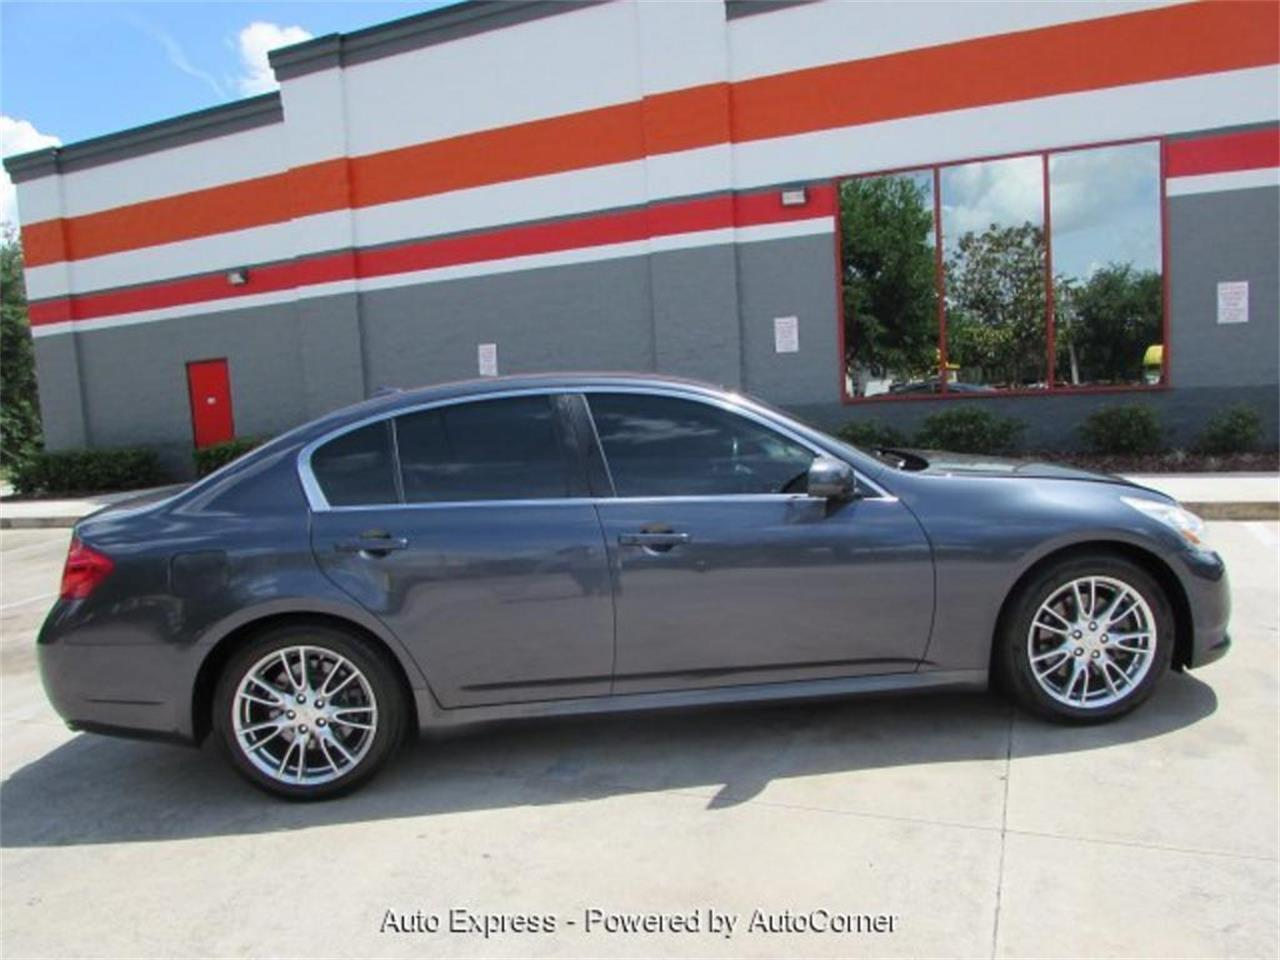 Large Picture of '08 Infiniti G35 - $8,999.00 - Q29A